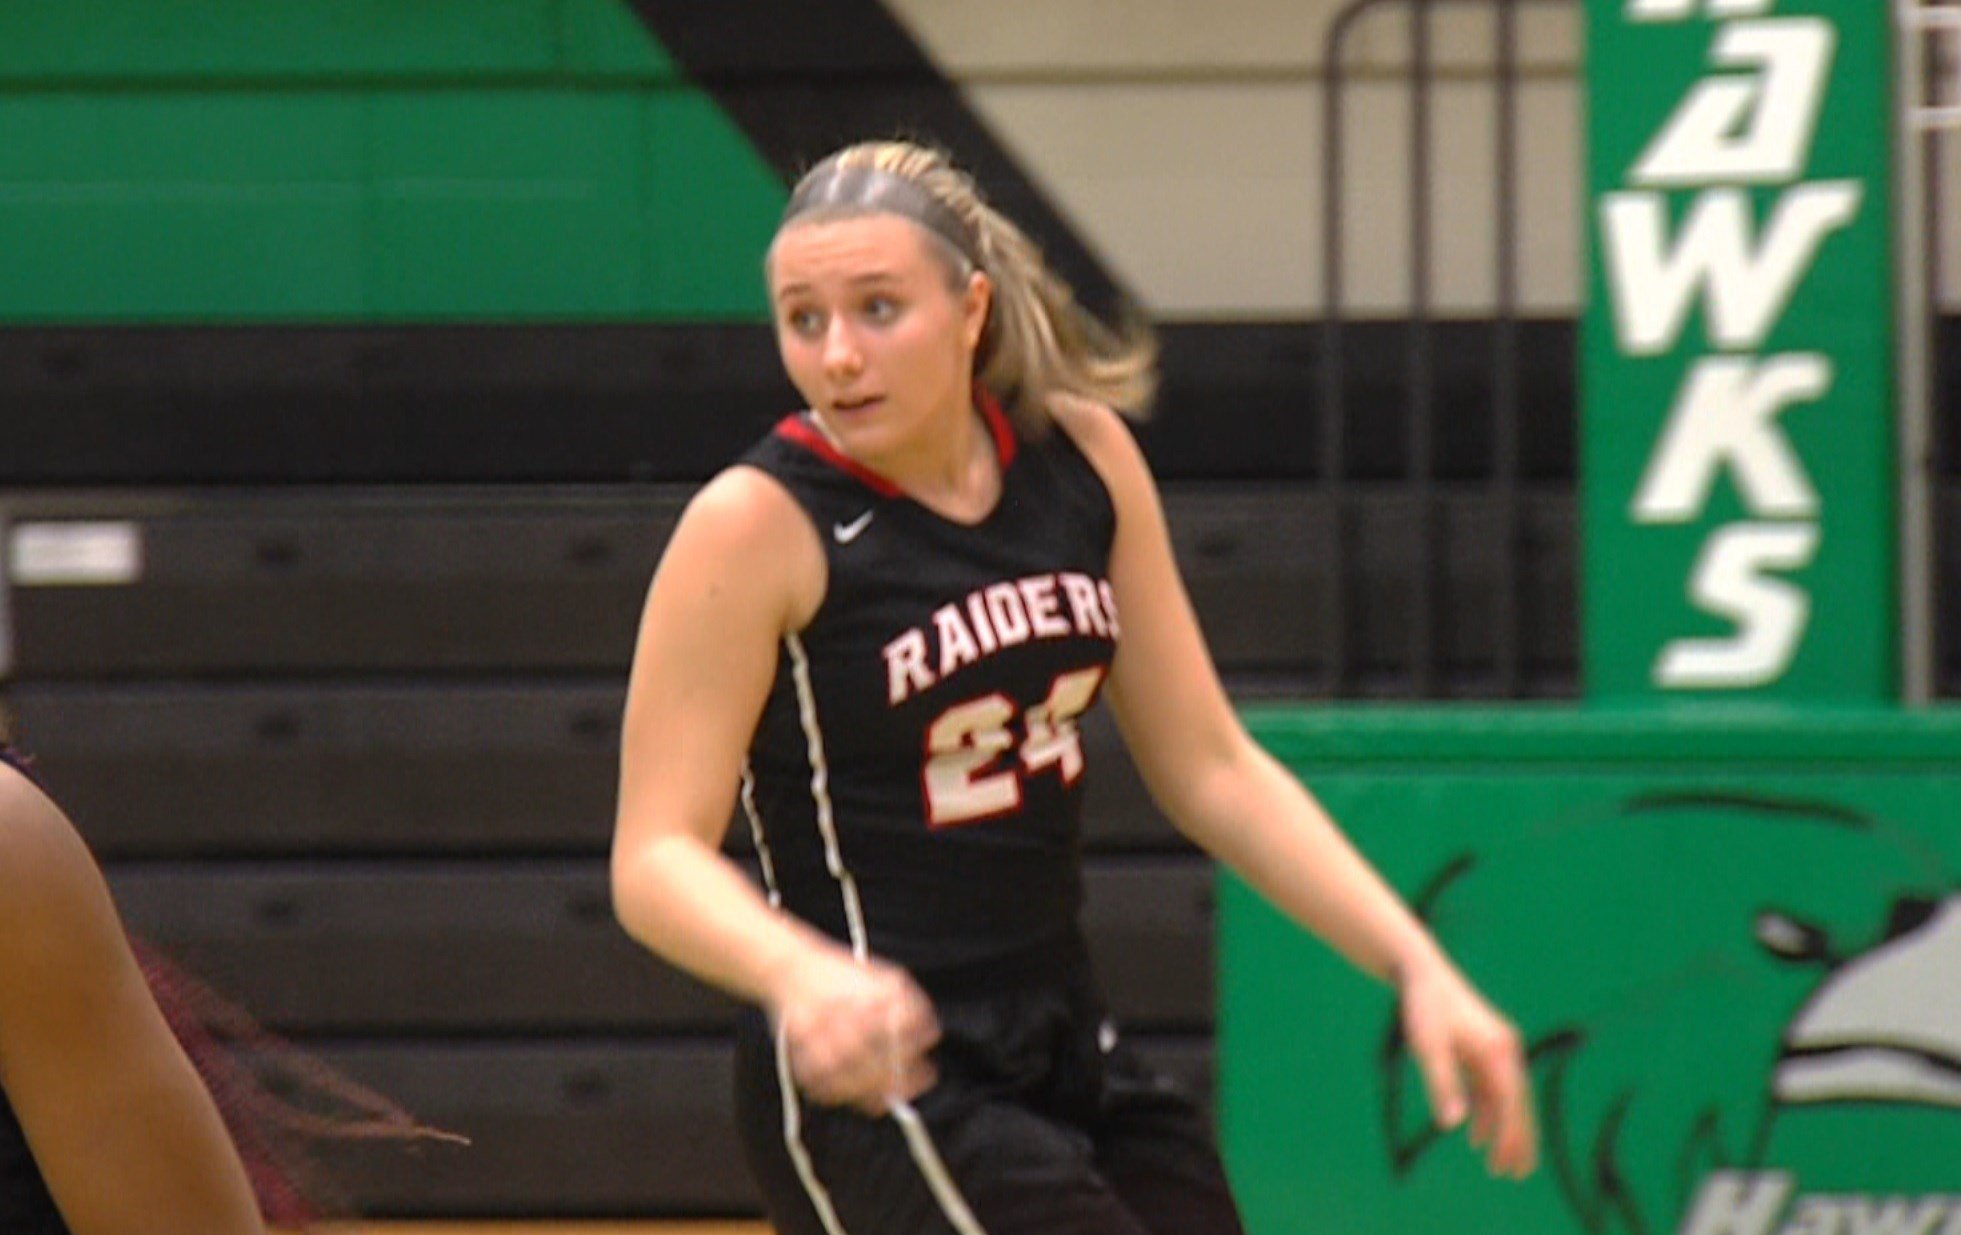 Channing Reed and Central A&M are CIC Tournament champions after the No. 2-seeded Lady Raiders took down No. 1 seed Tuscola 58-55.